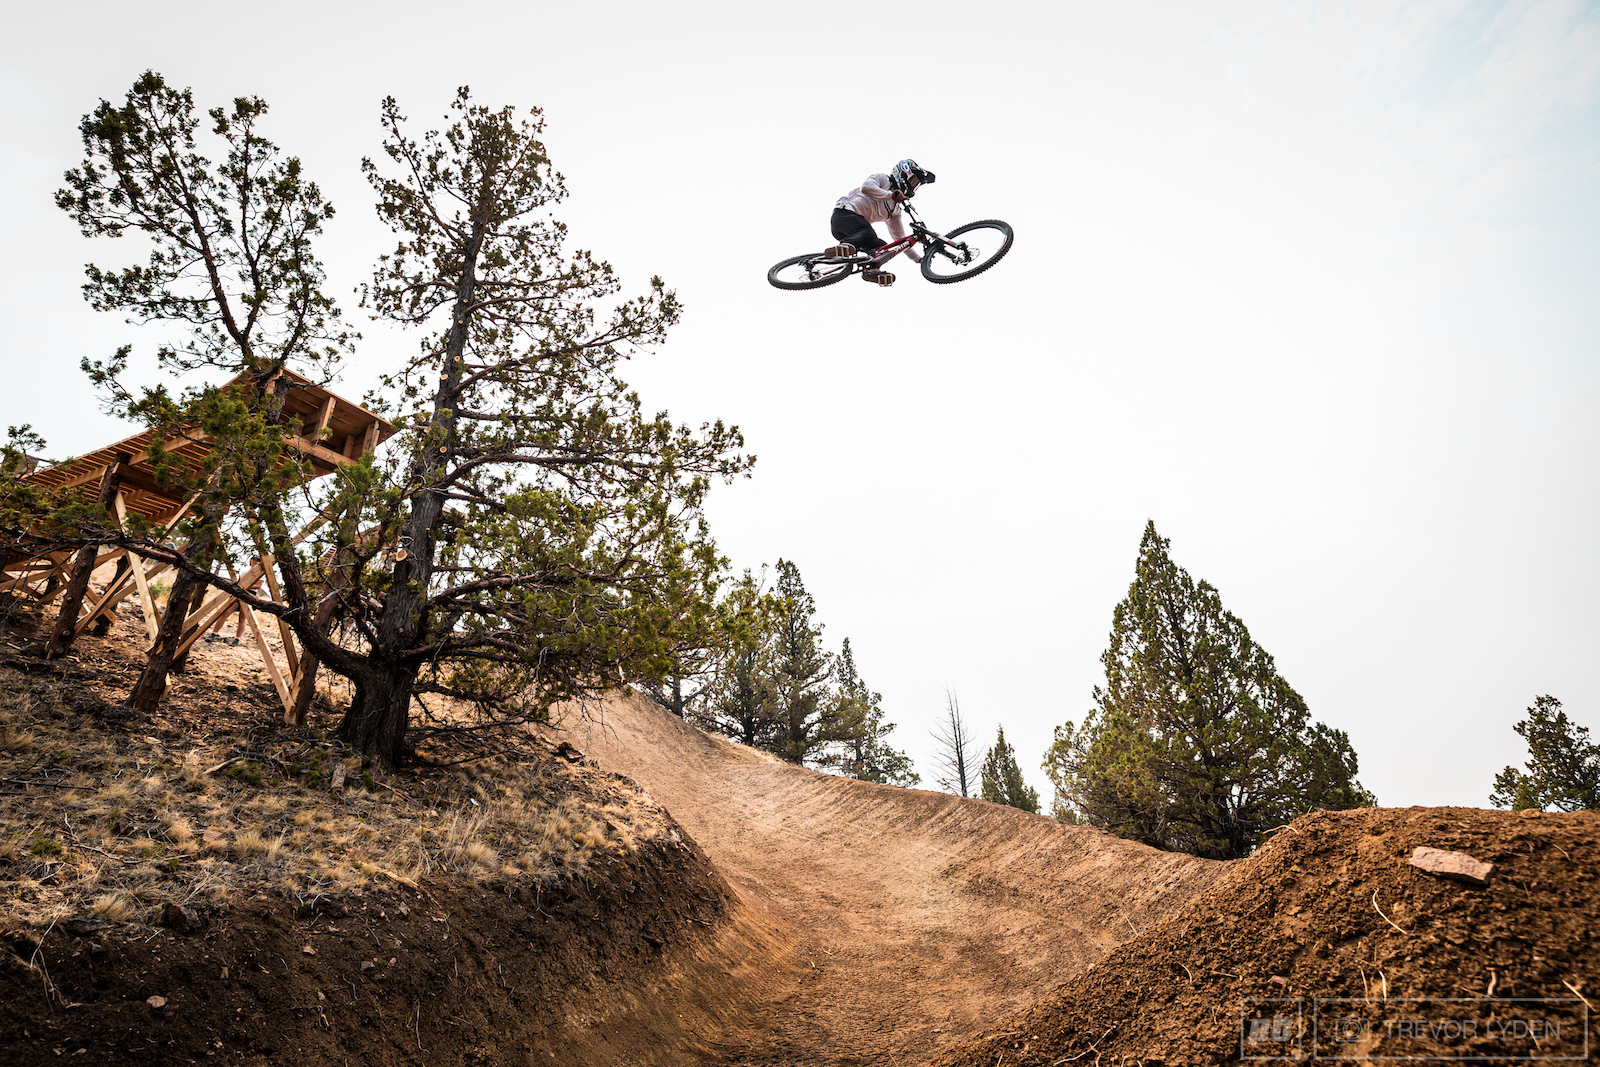 Damon Iwanaga dropping in on yet another new feature of the year.